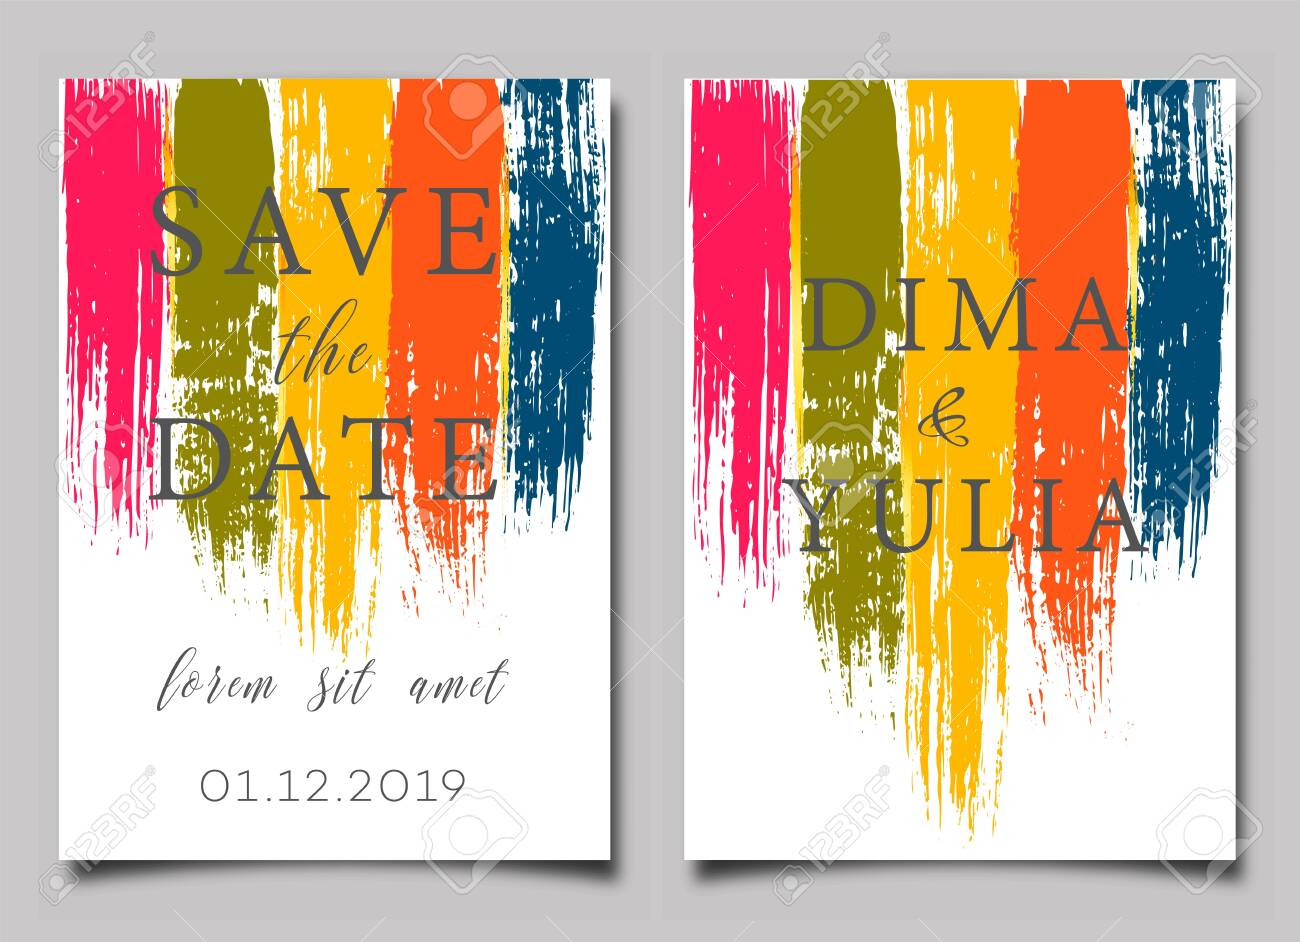 Wedding Invitation Or Anniversary Card Templates With Brush Strokes